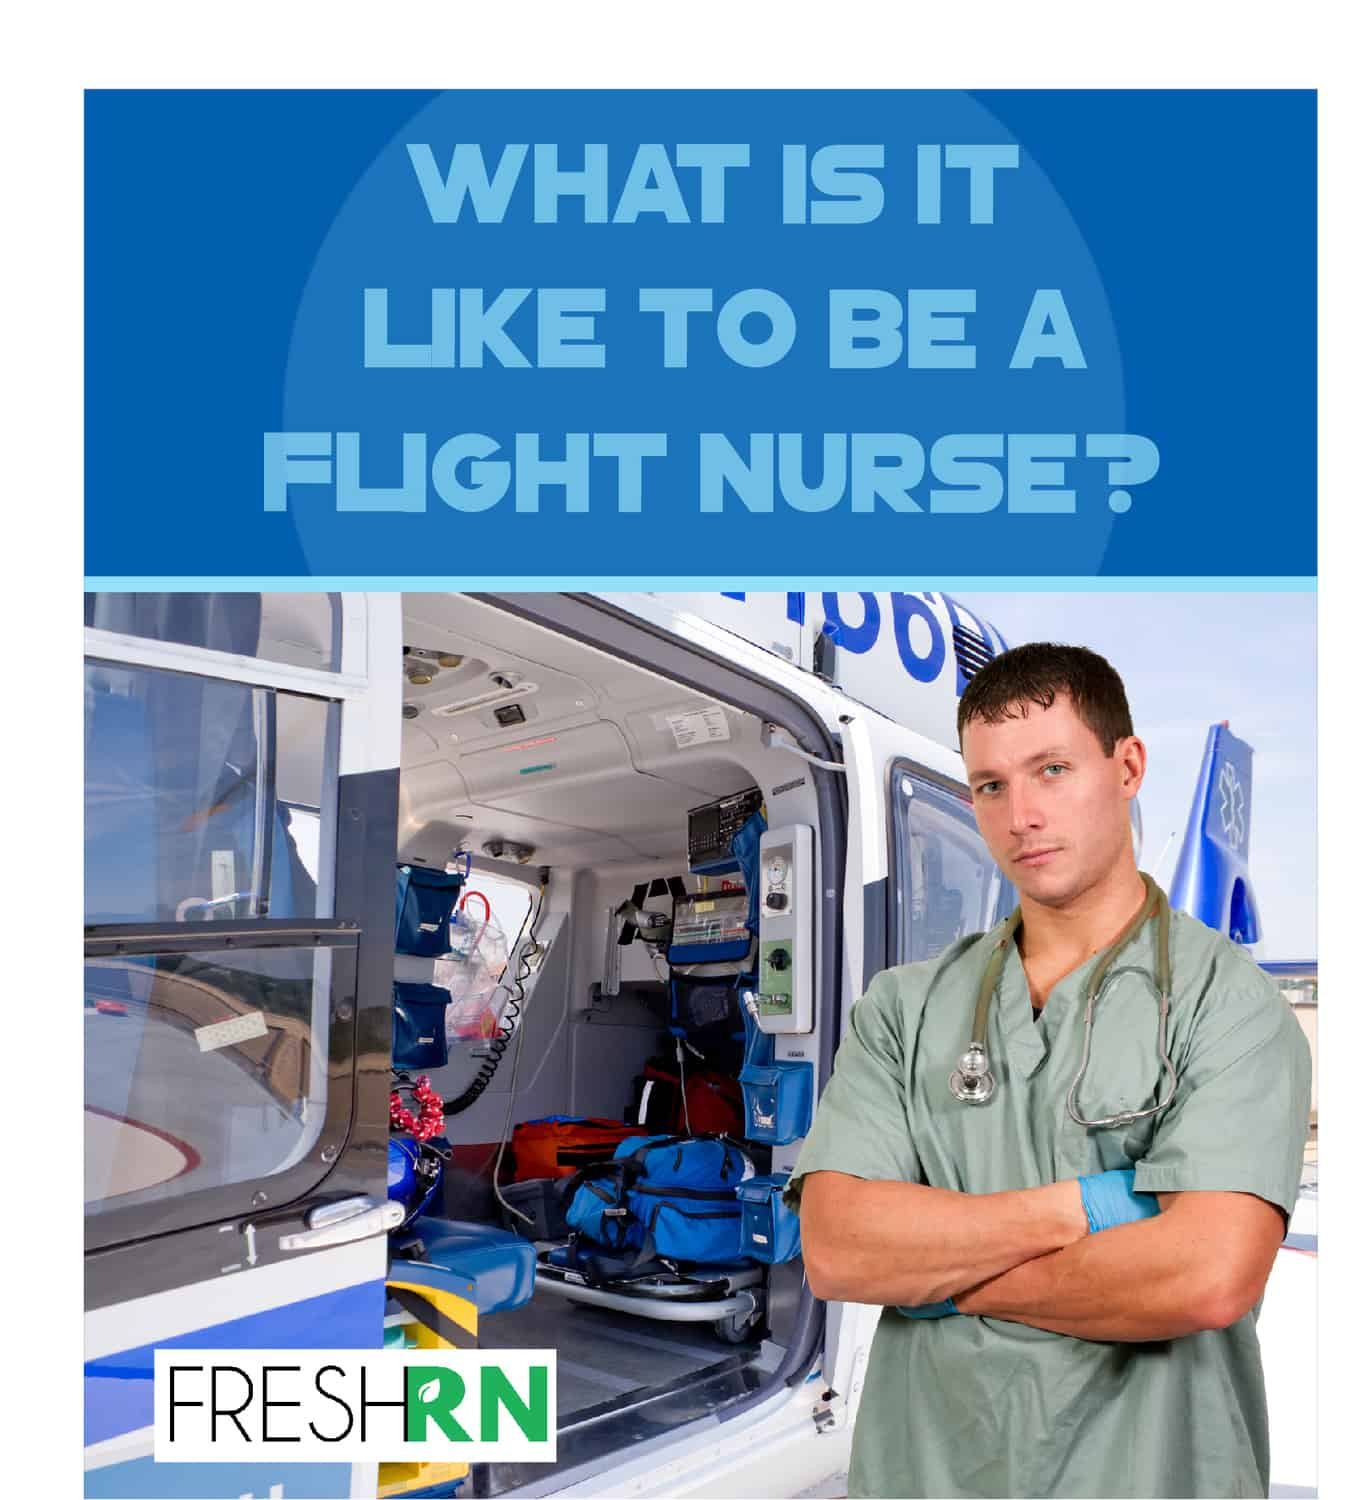 Have you ever wondered what it is like to be a flight nurse. Read on for a peek behind the curtain and what it really takes to be a flight nurse.